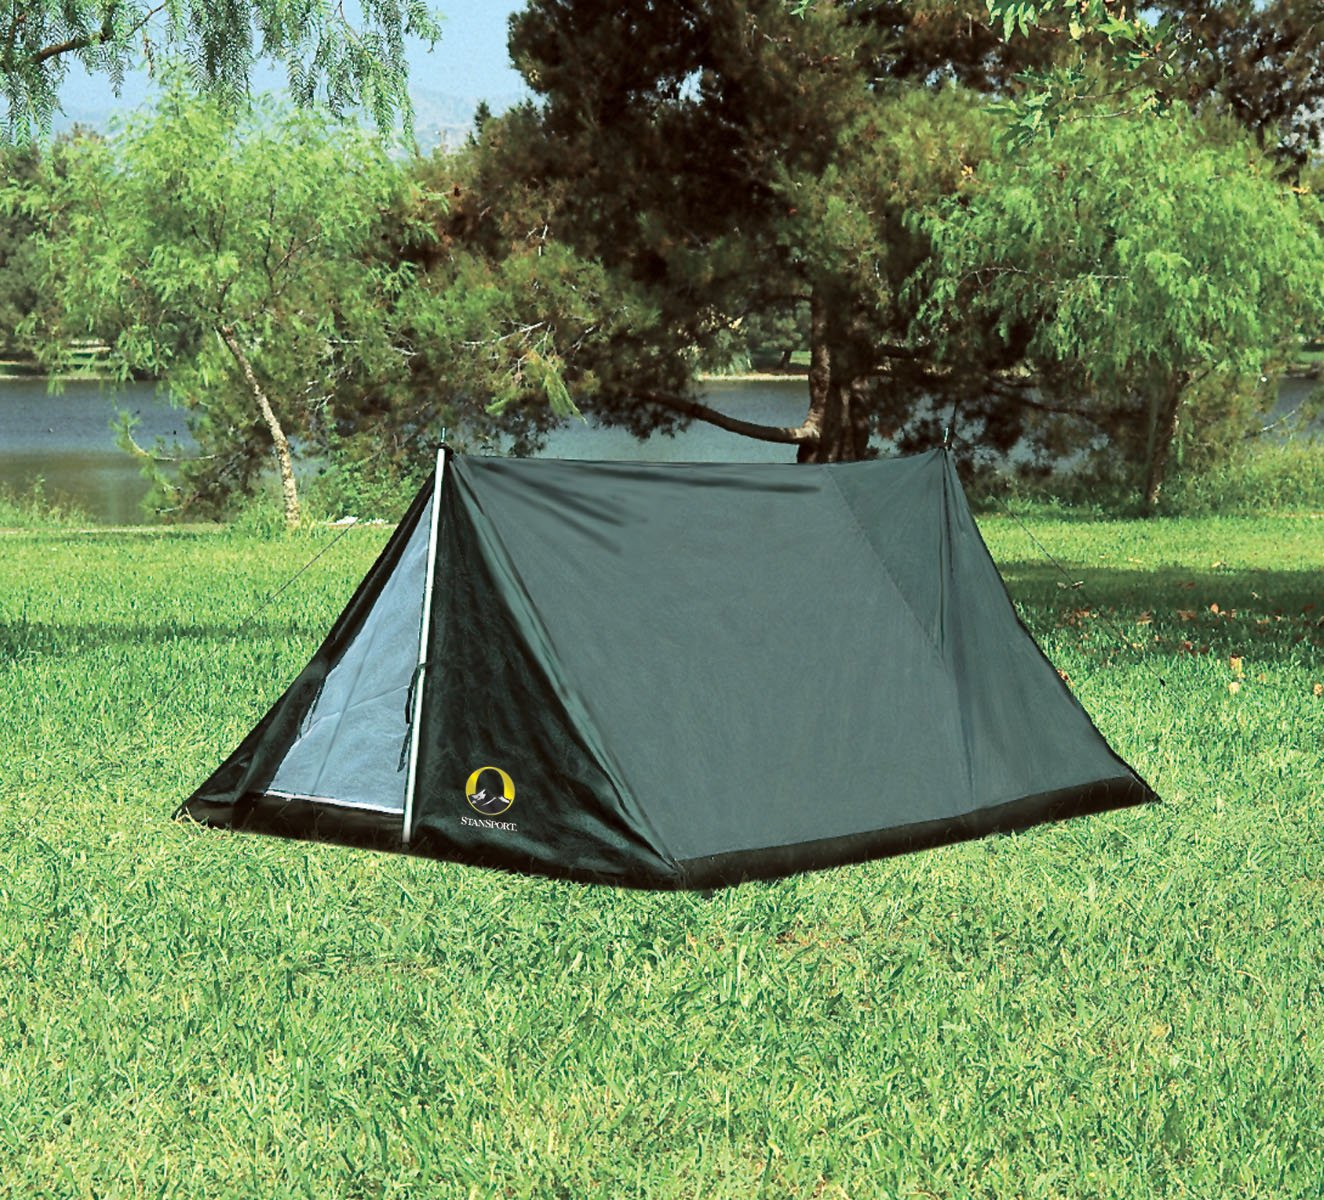 //.amazon.com/Stansport-Bac...30915103u0026sru003d8-1u0026keywordsu003dstansport+scout+ tent & Backpacking tents lets see u0027em! | Page 3 | Bushcraft USA Forums